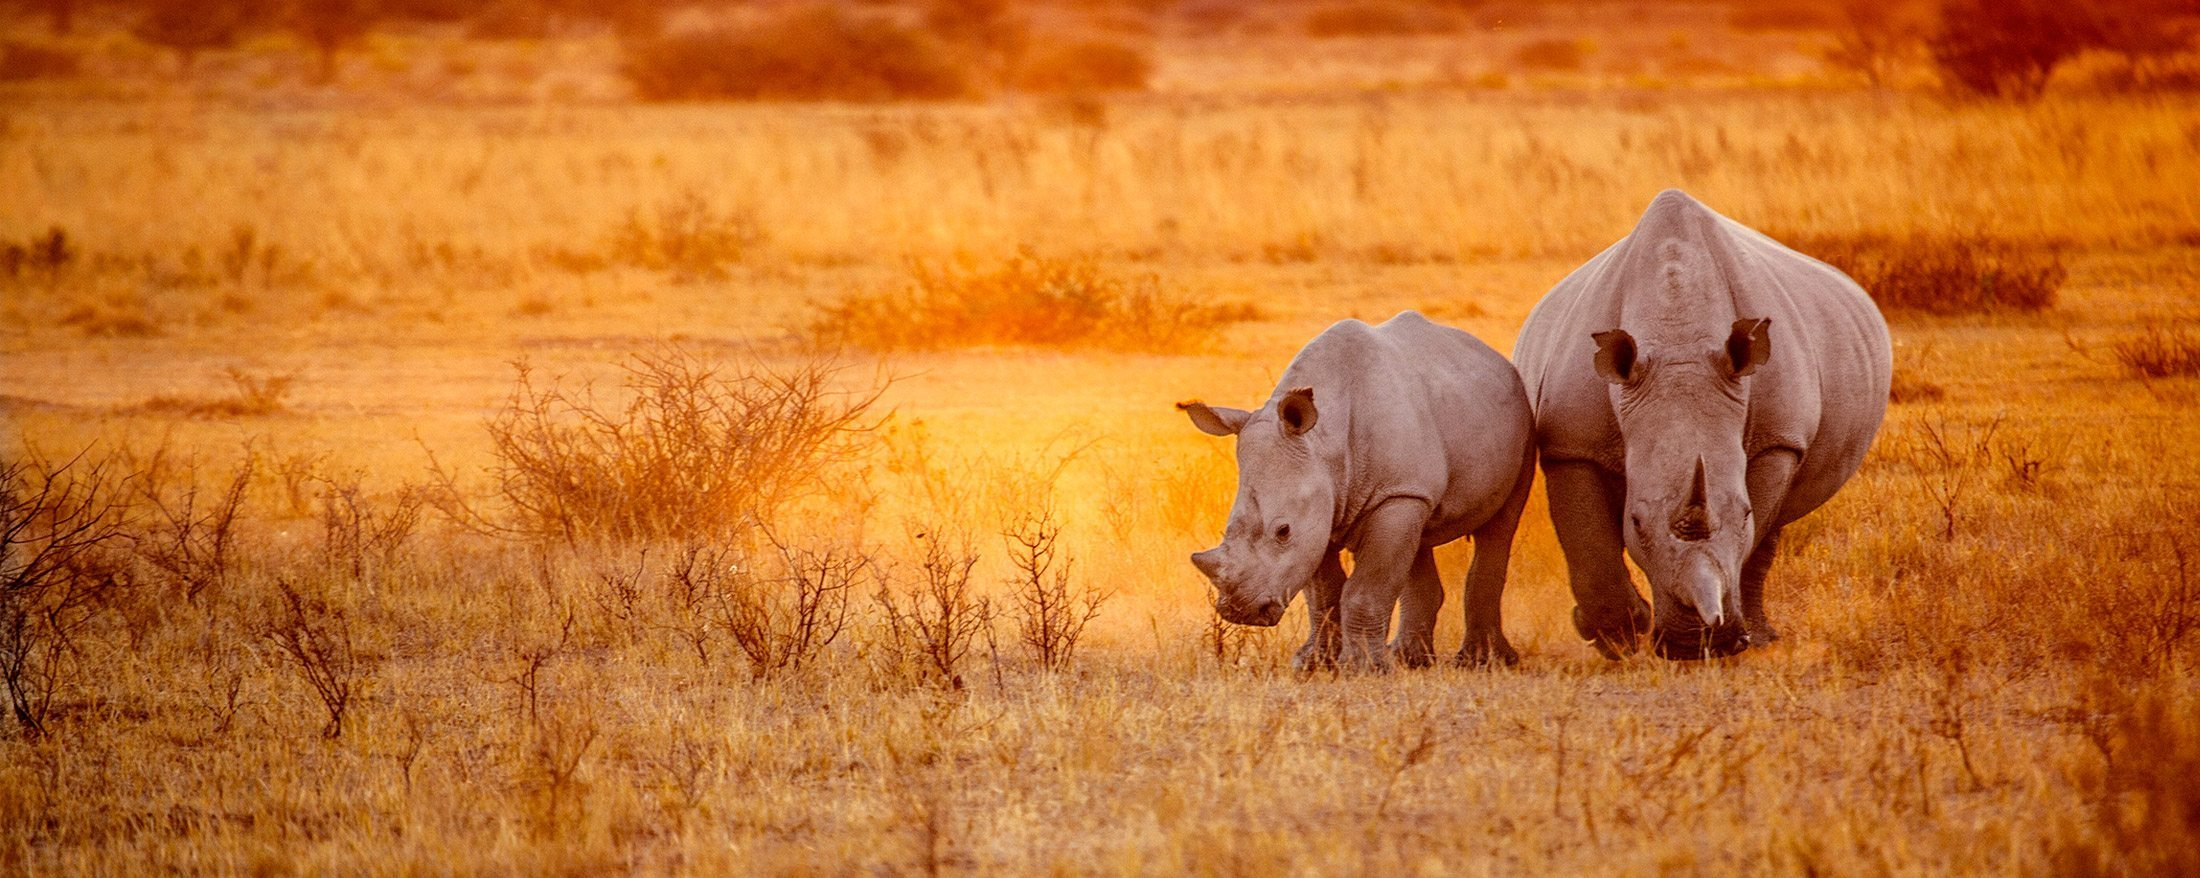 At Art of Safari we carefully curate the conservation initiatives we support.